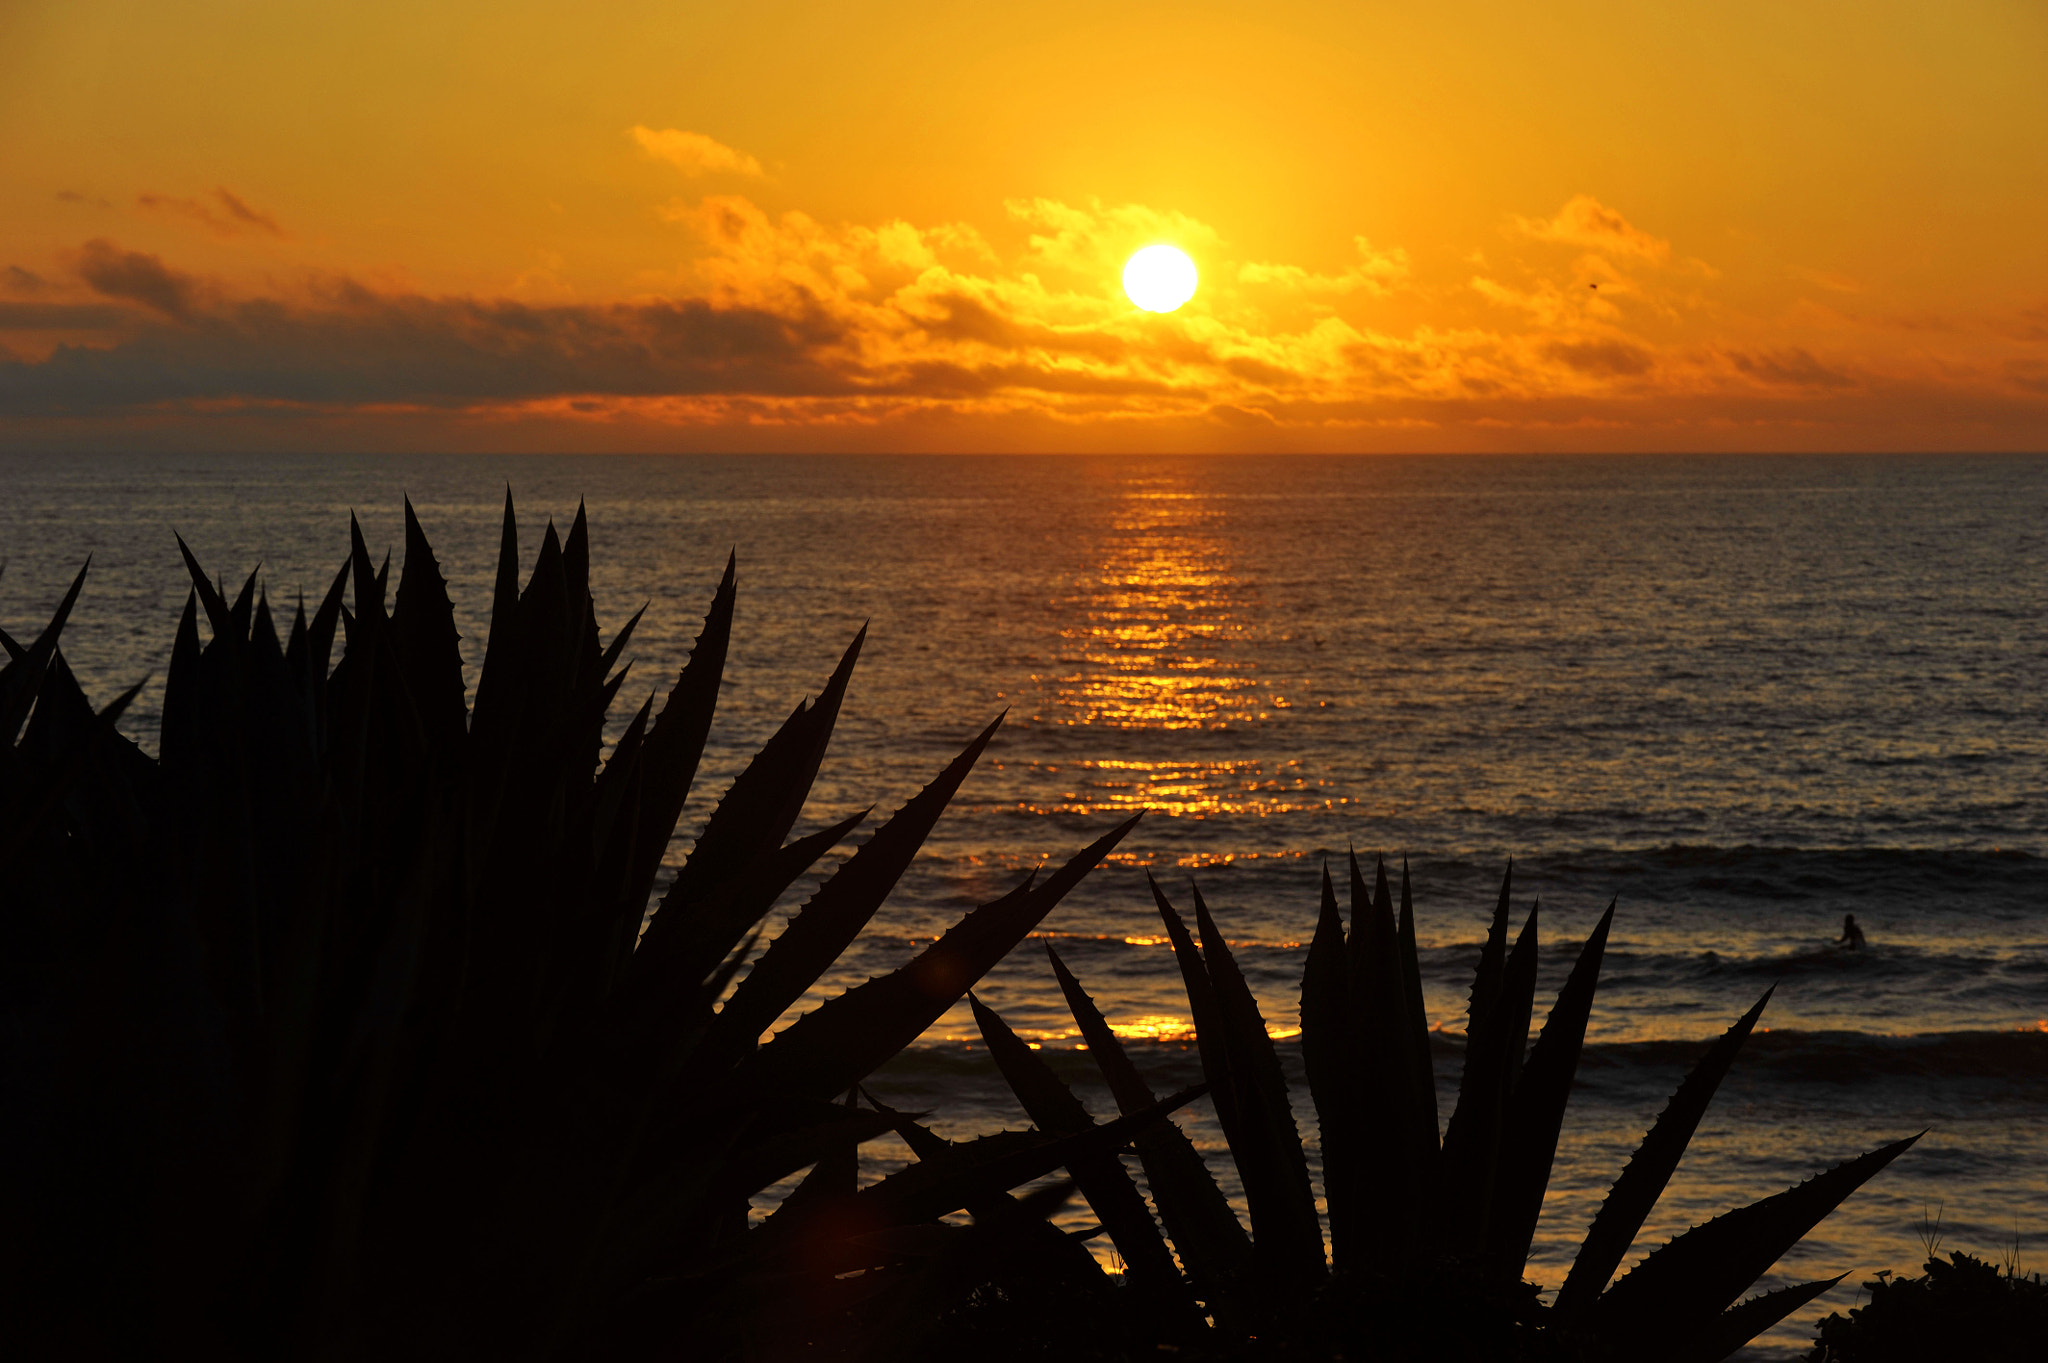 Photograph Cactus at Sunset in Oceanside - December 6, 2012 by Rich Cruse on 500px